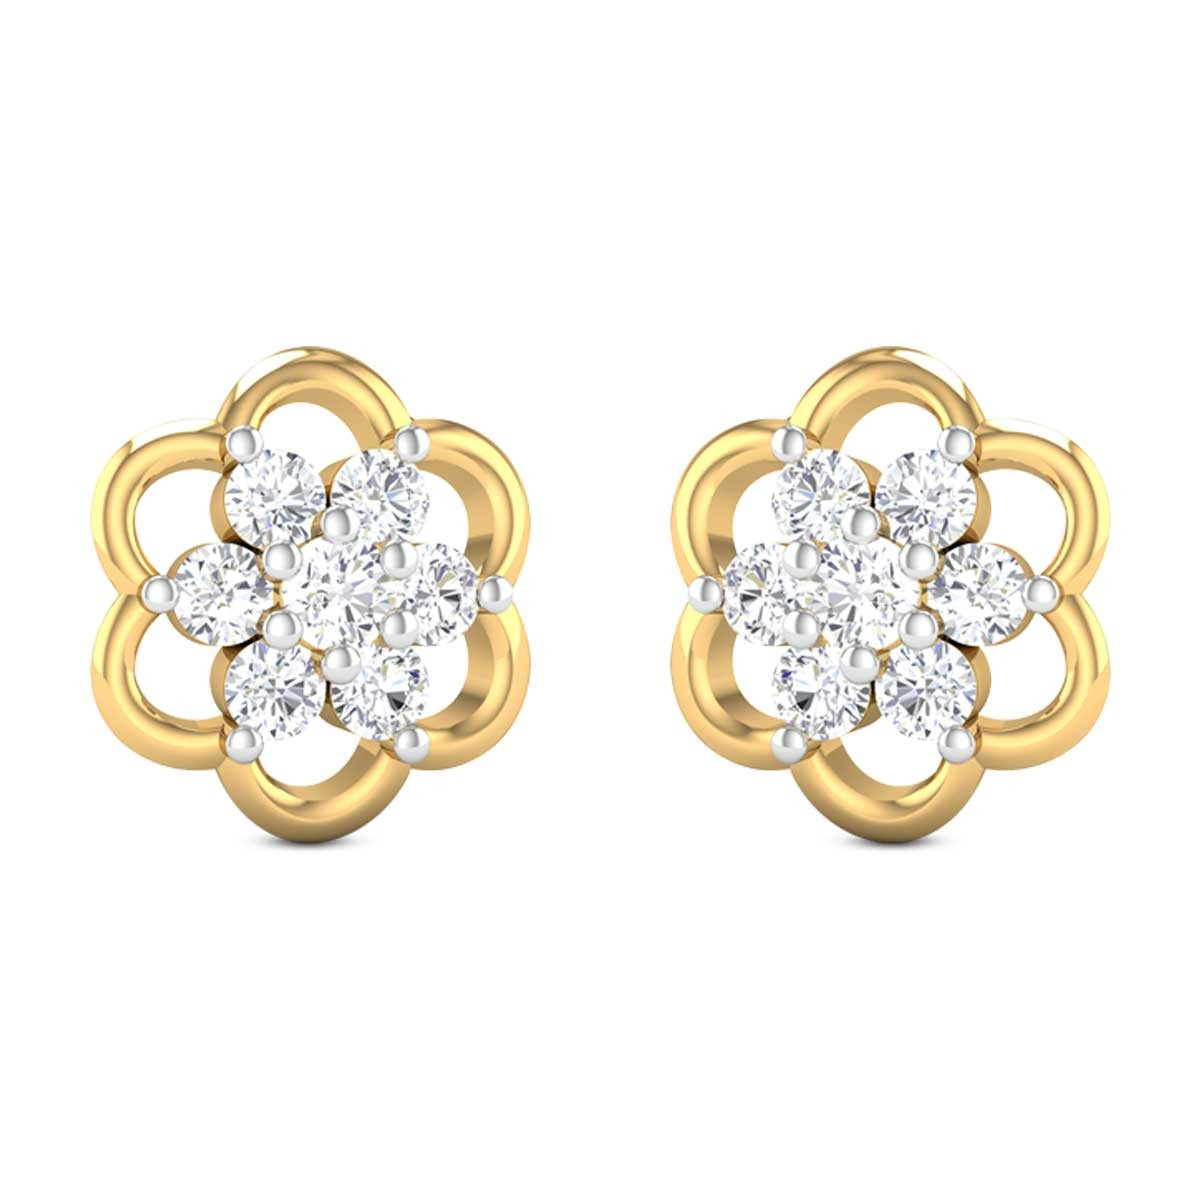 Aza Diamond Earrings